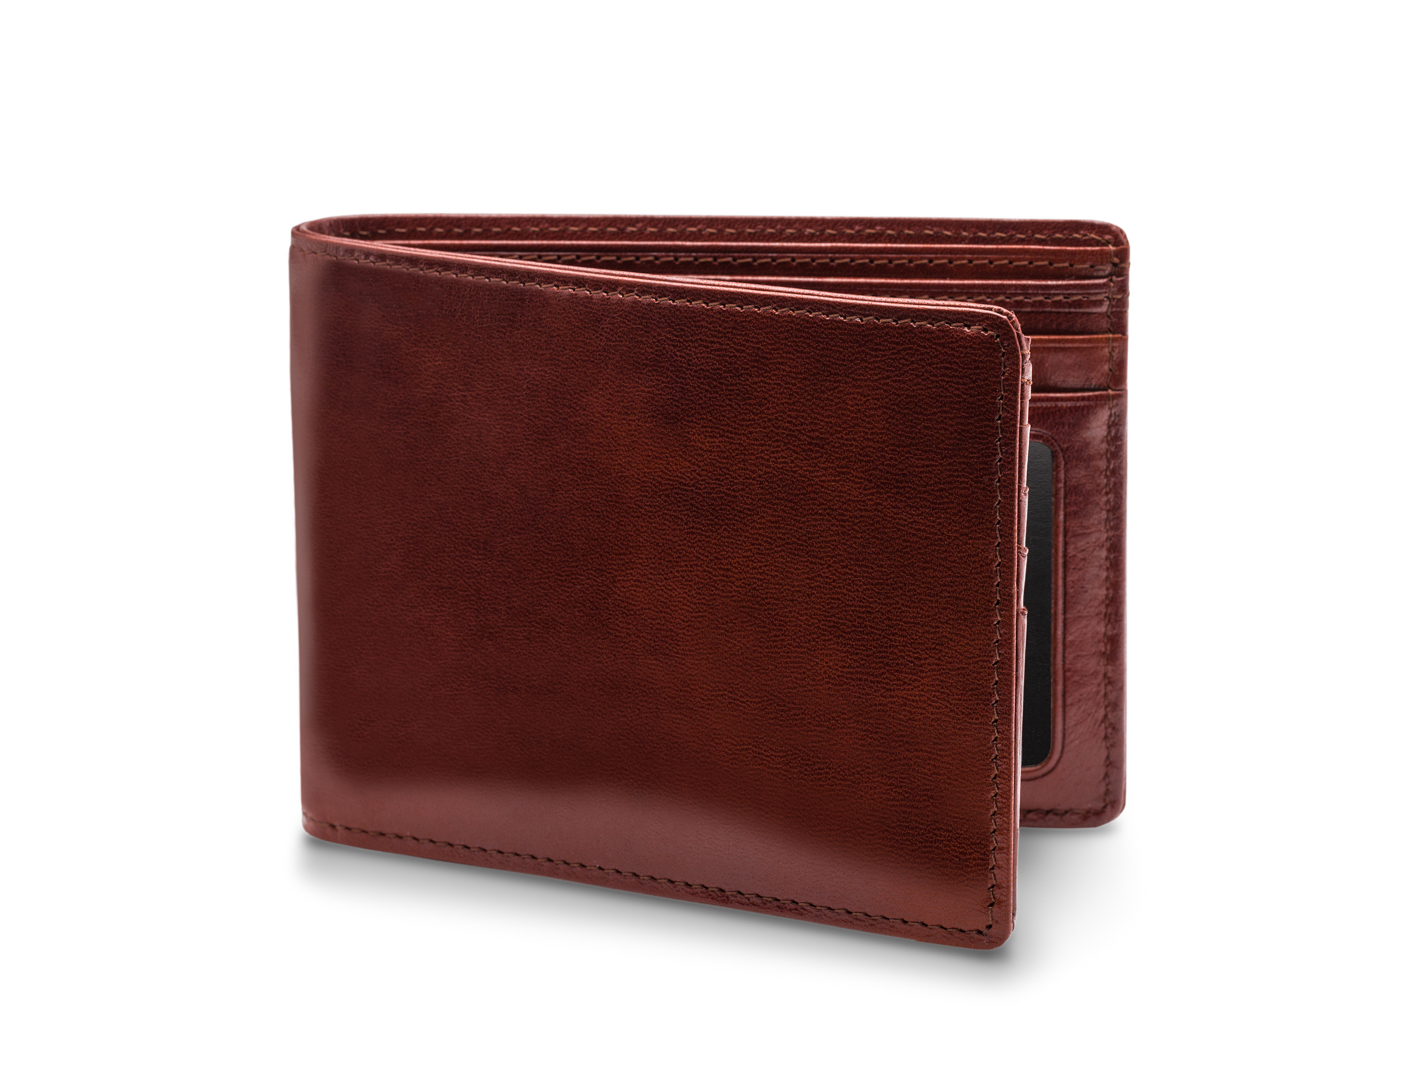 5 Pocket Wallet W/ I.D. - 58 Dark Brown